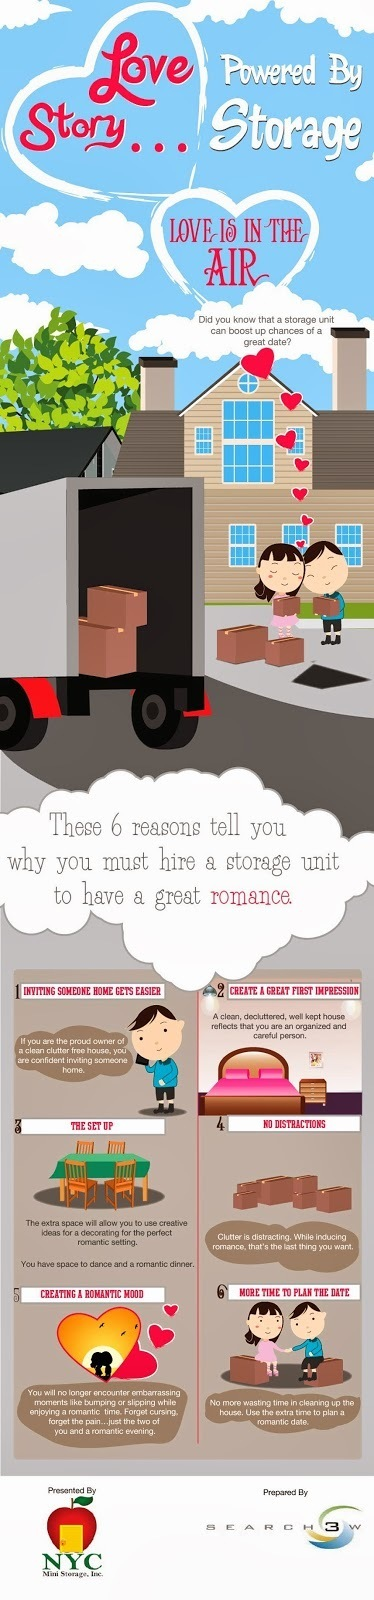 Infographic: Love Story…Powered By Storag | NYC MInistorage | Scoop.it